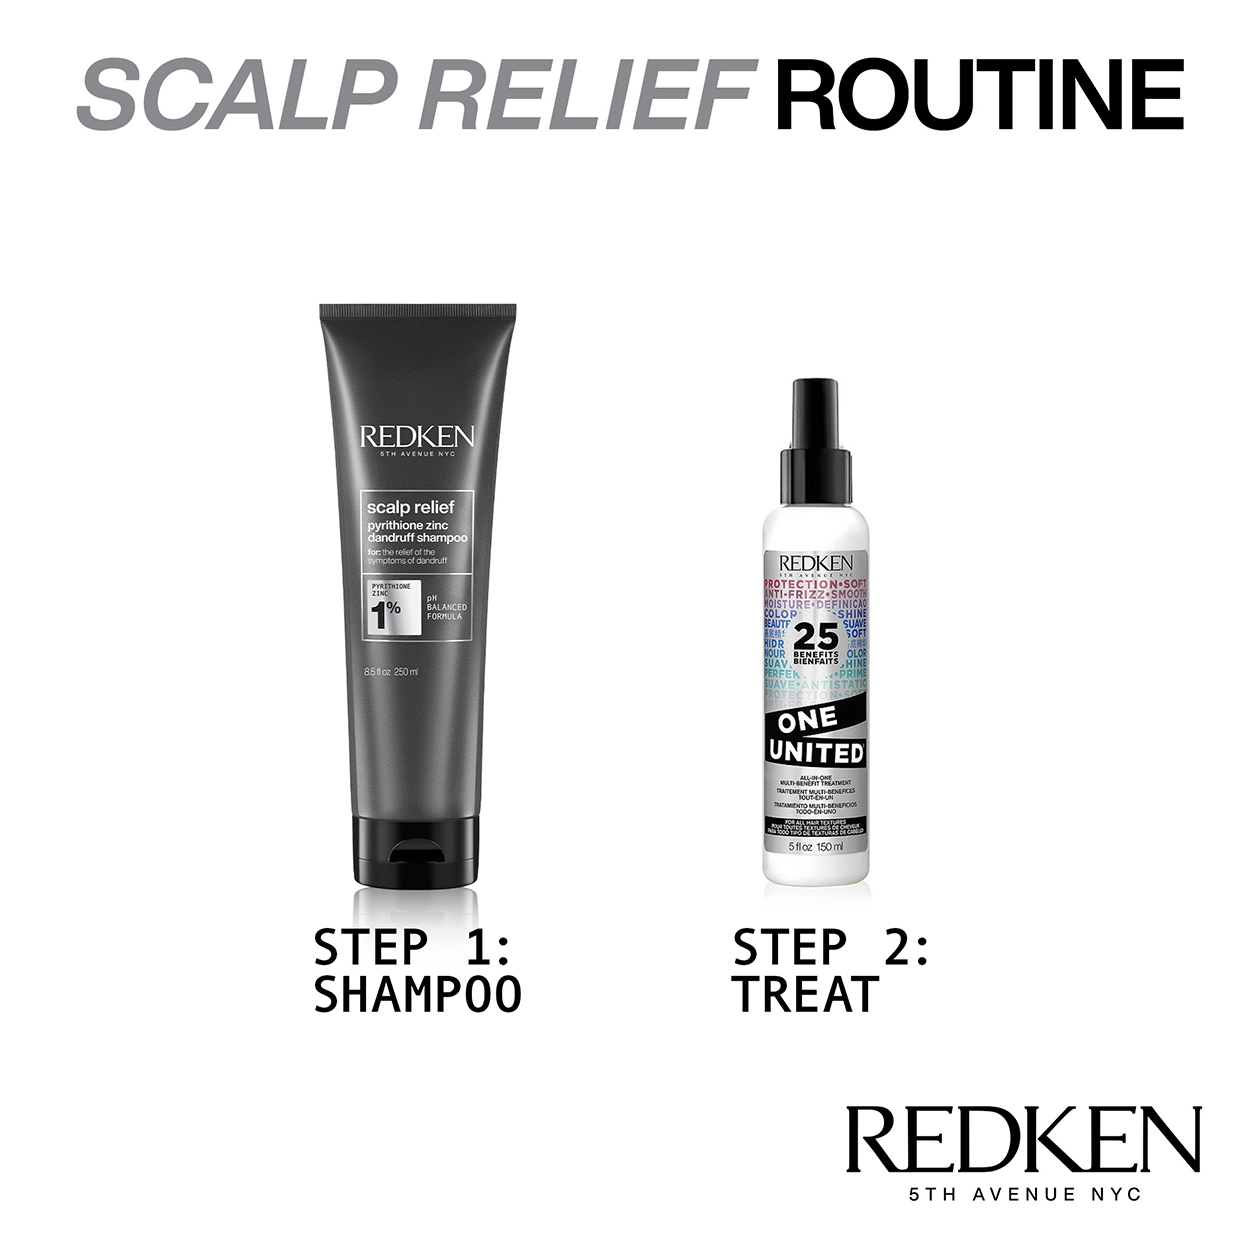 Redken-2020-NA-Scalp-Relief-Regimen-Retail